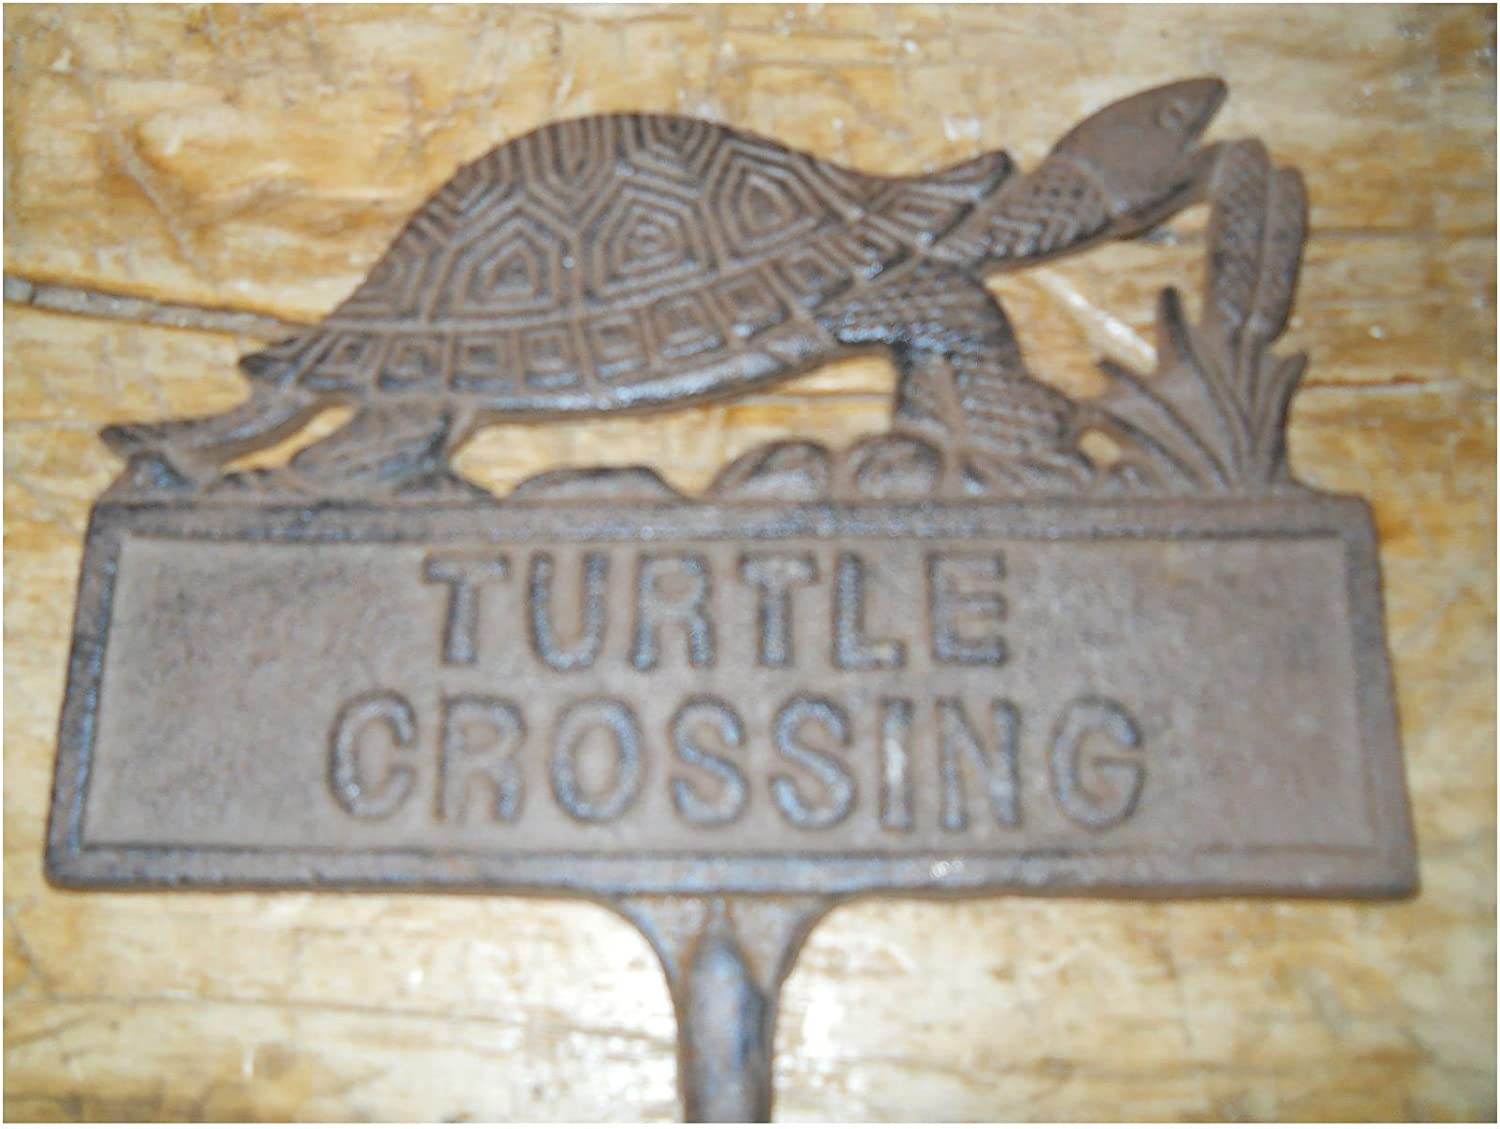 Cast Iron TURTLE CROSSING Sign Garden Stake Home Decor Plaque